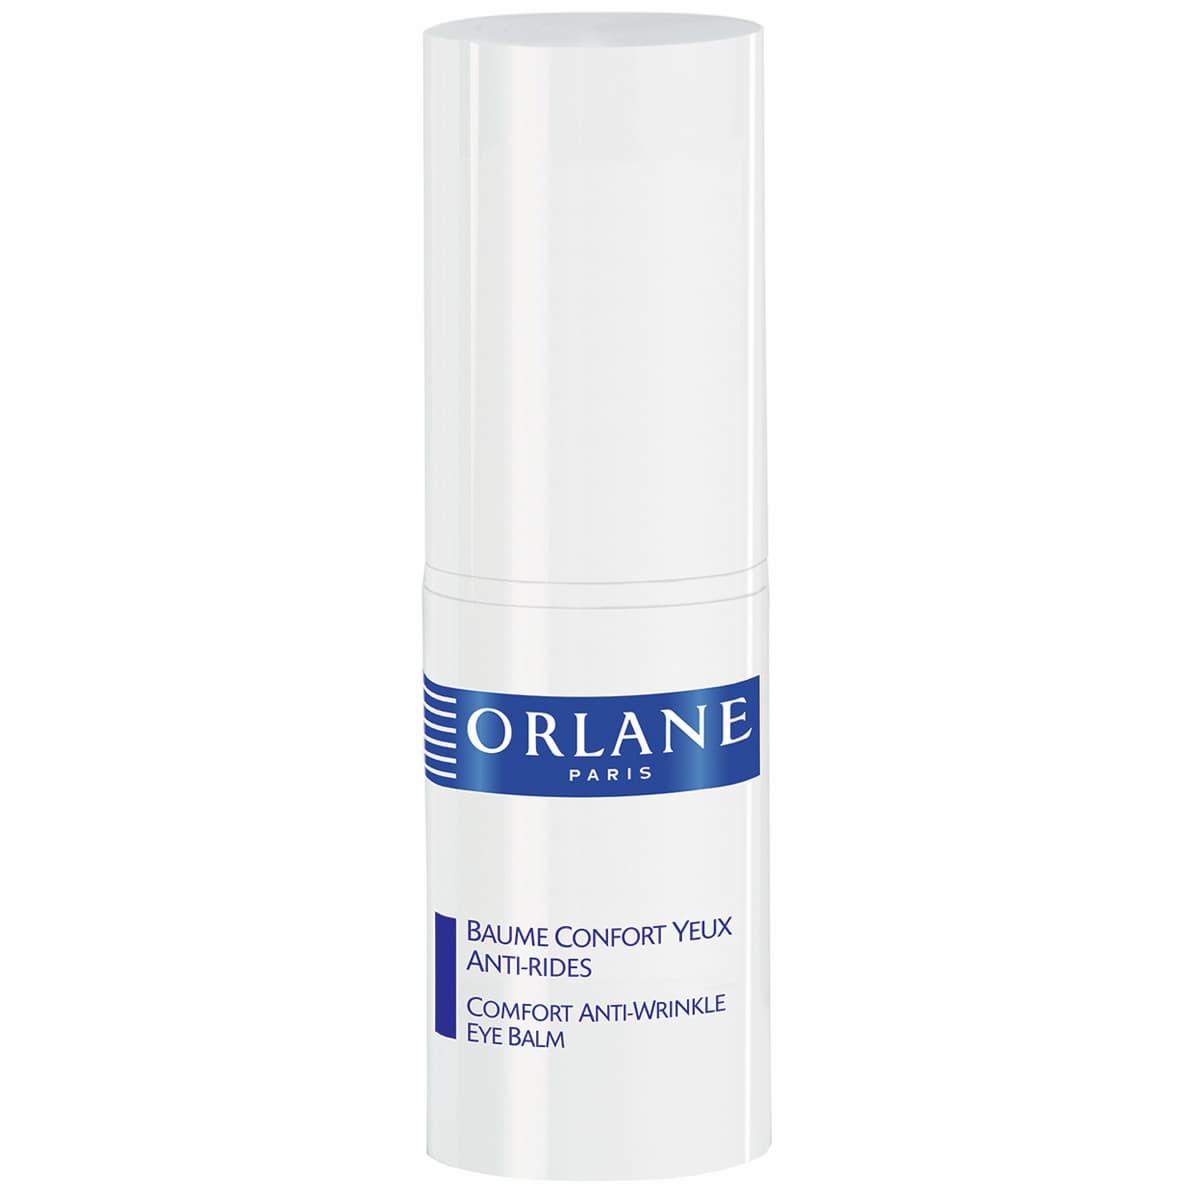 Baume Confort Yeux anti-rides - ORLANE